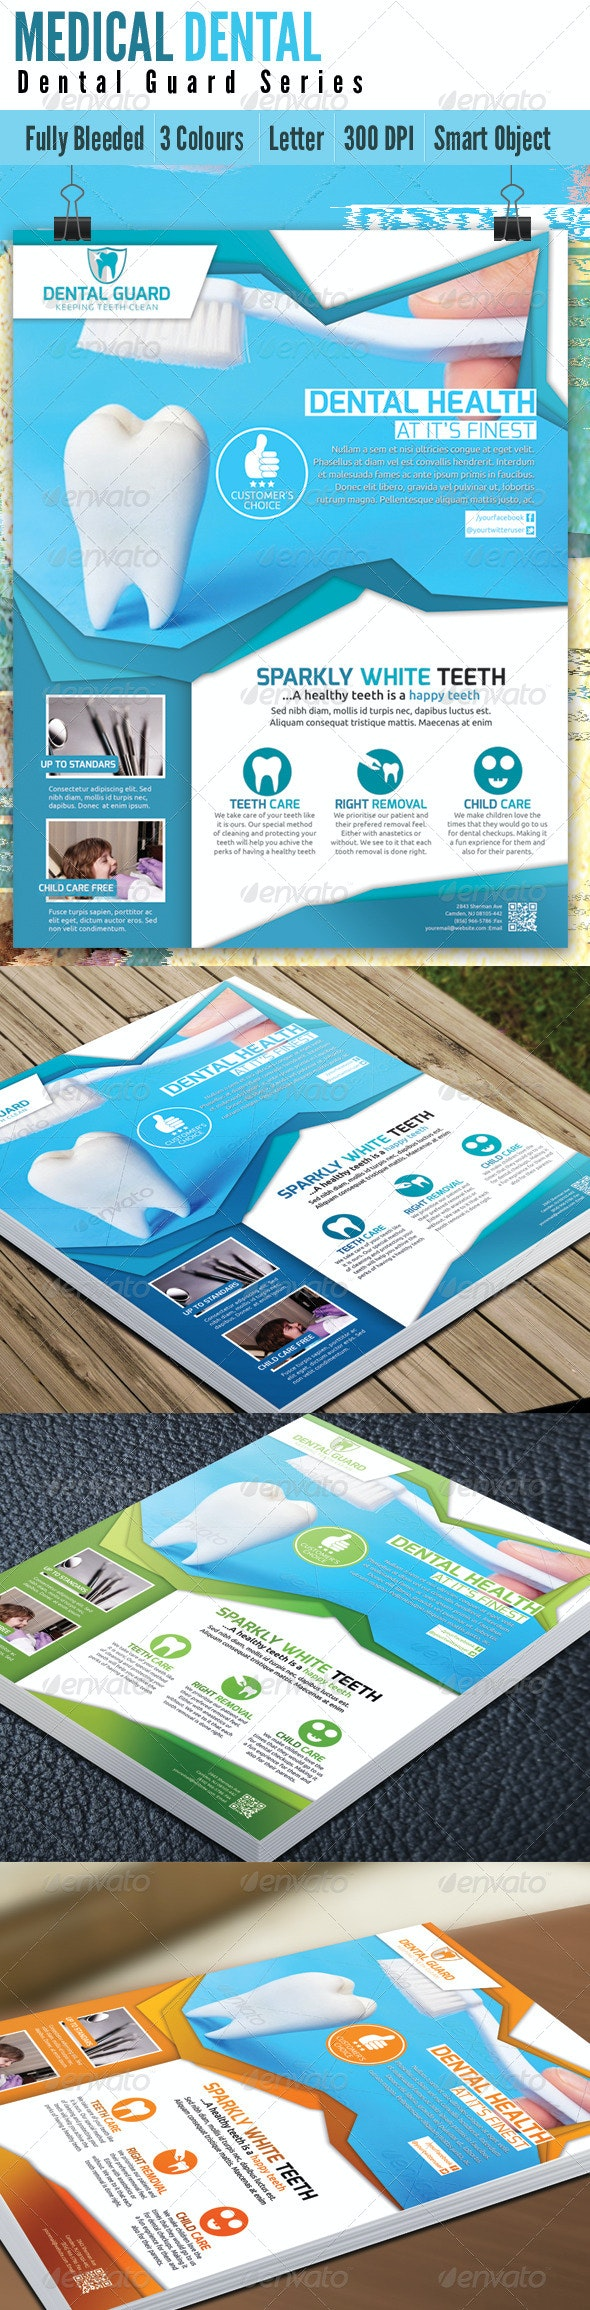 Medical Dental Flyer V2 - Corporate Flyers